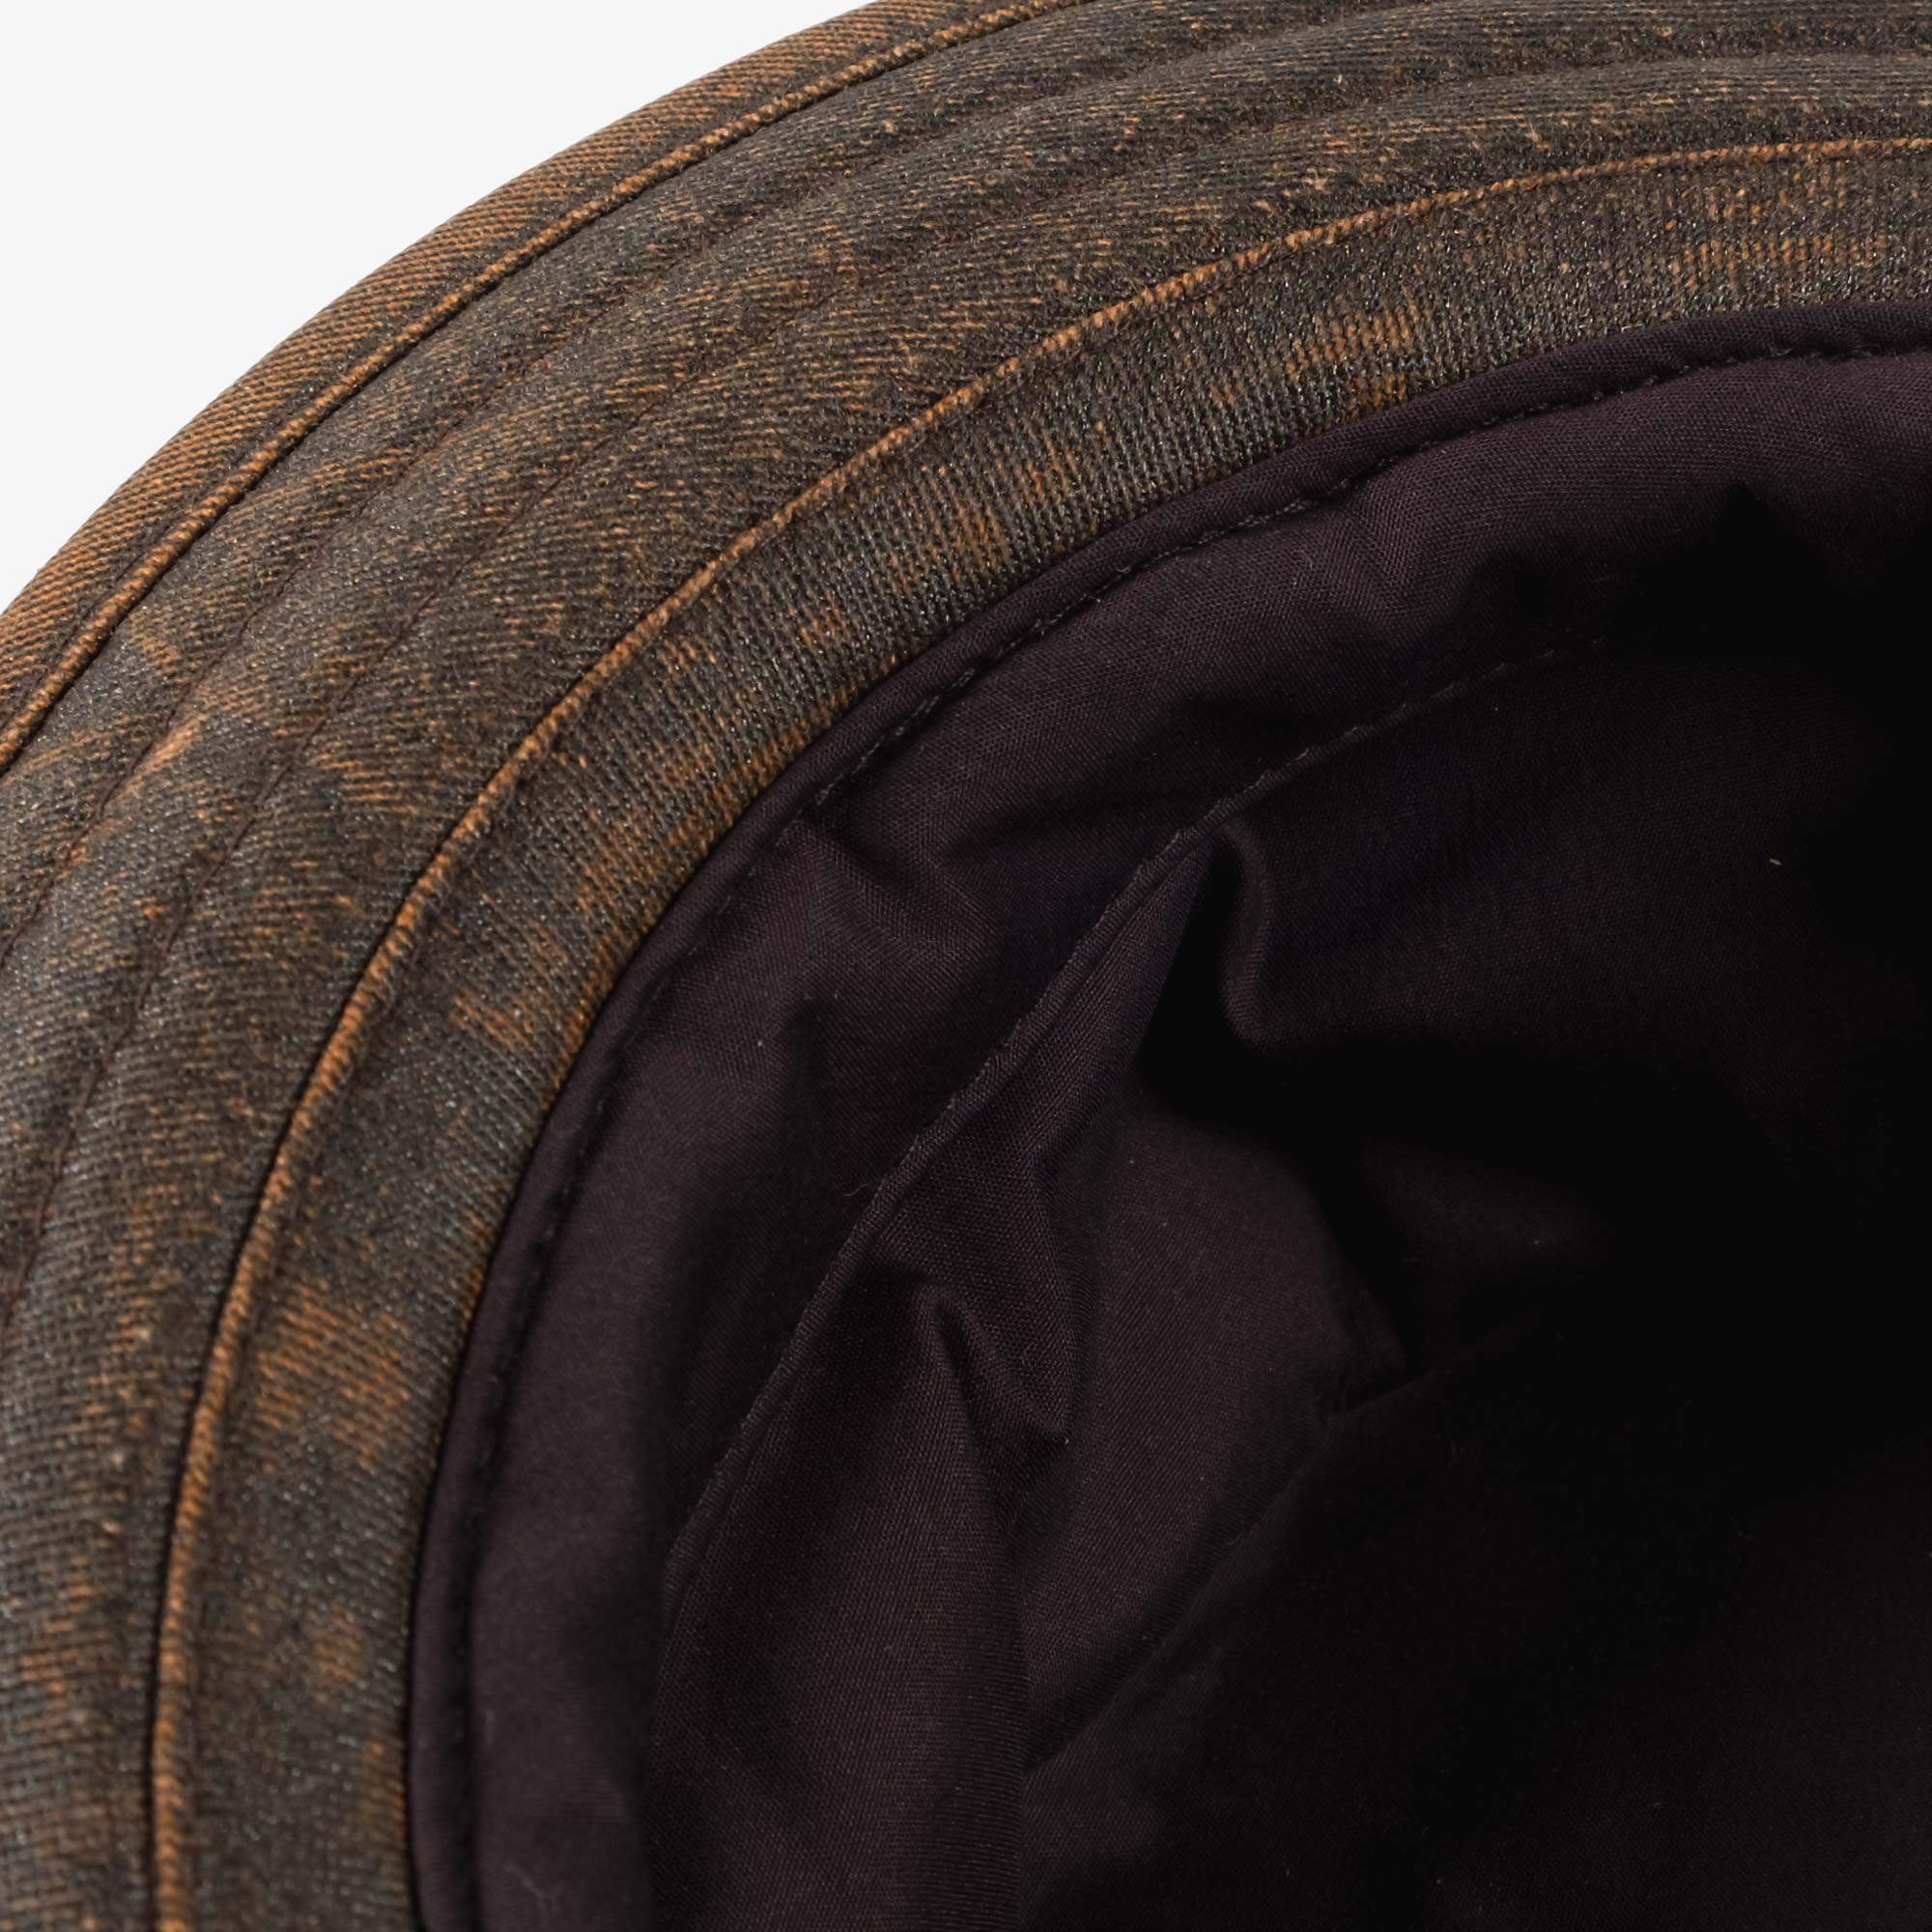 About The Tower t'1337 Hat - Dark Brown 4